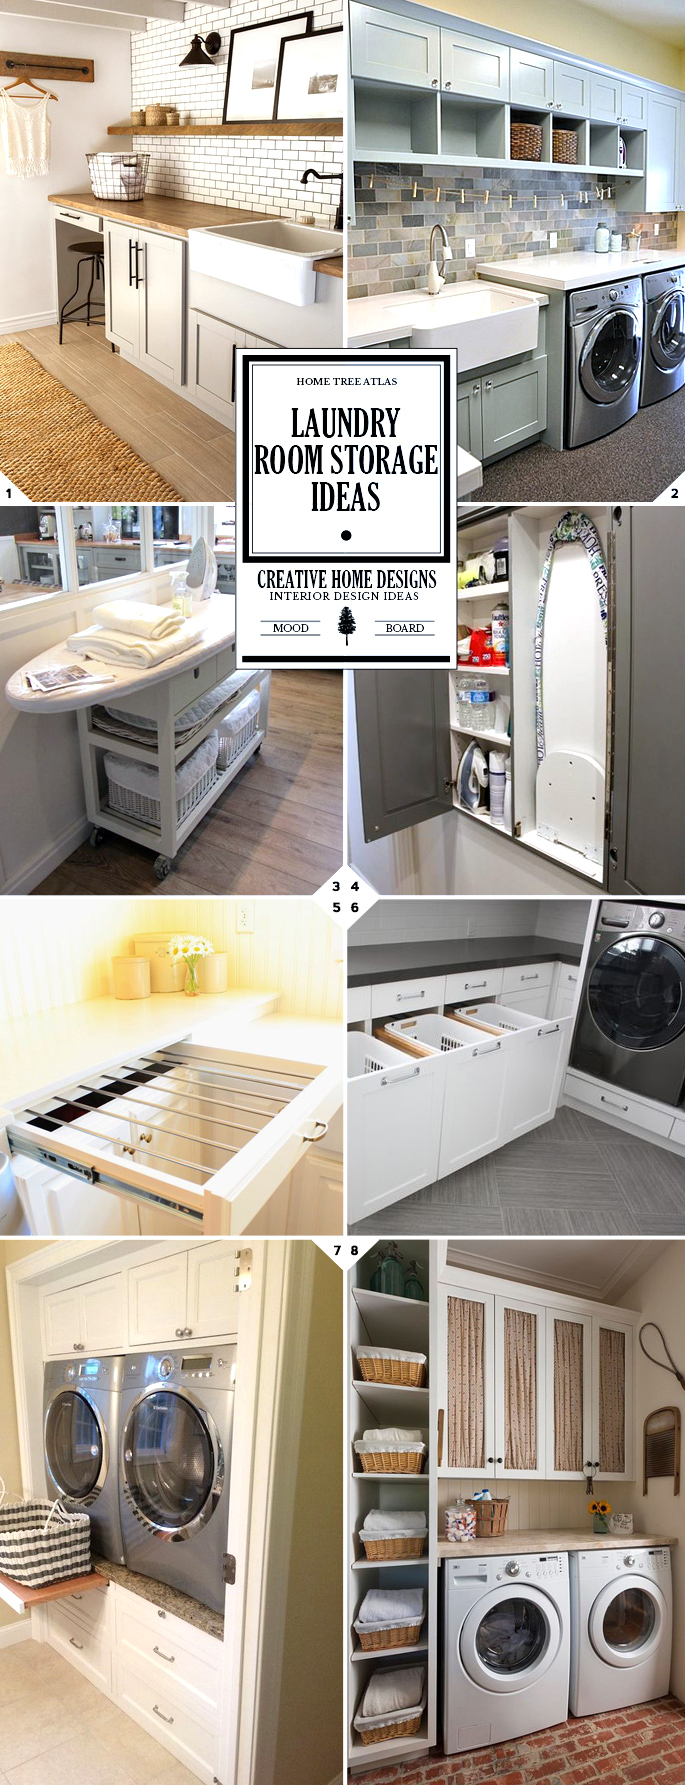 Helpful Laundry Room Storage Ideas and Solutions